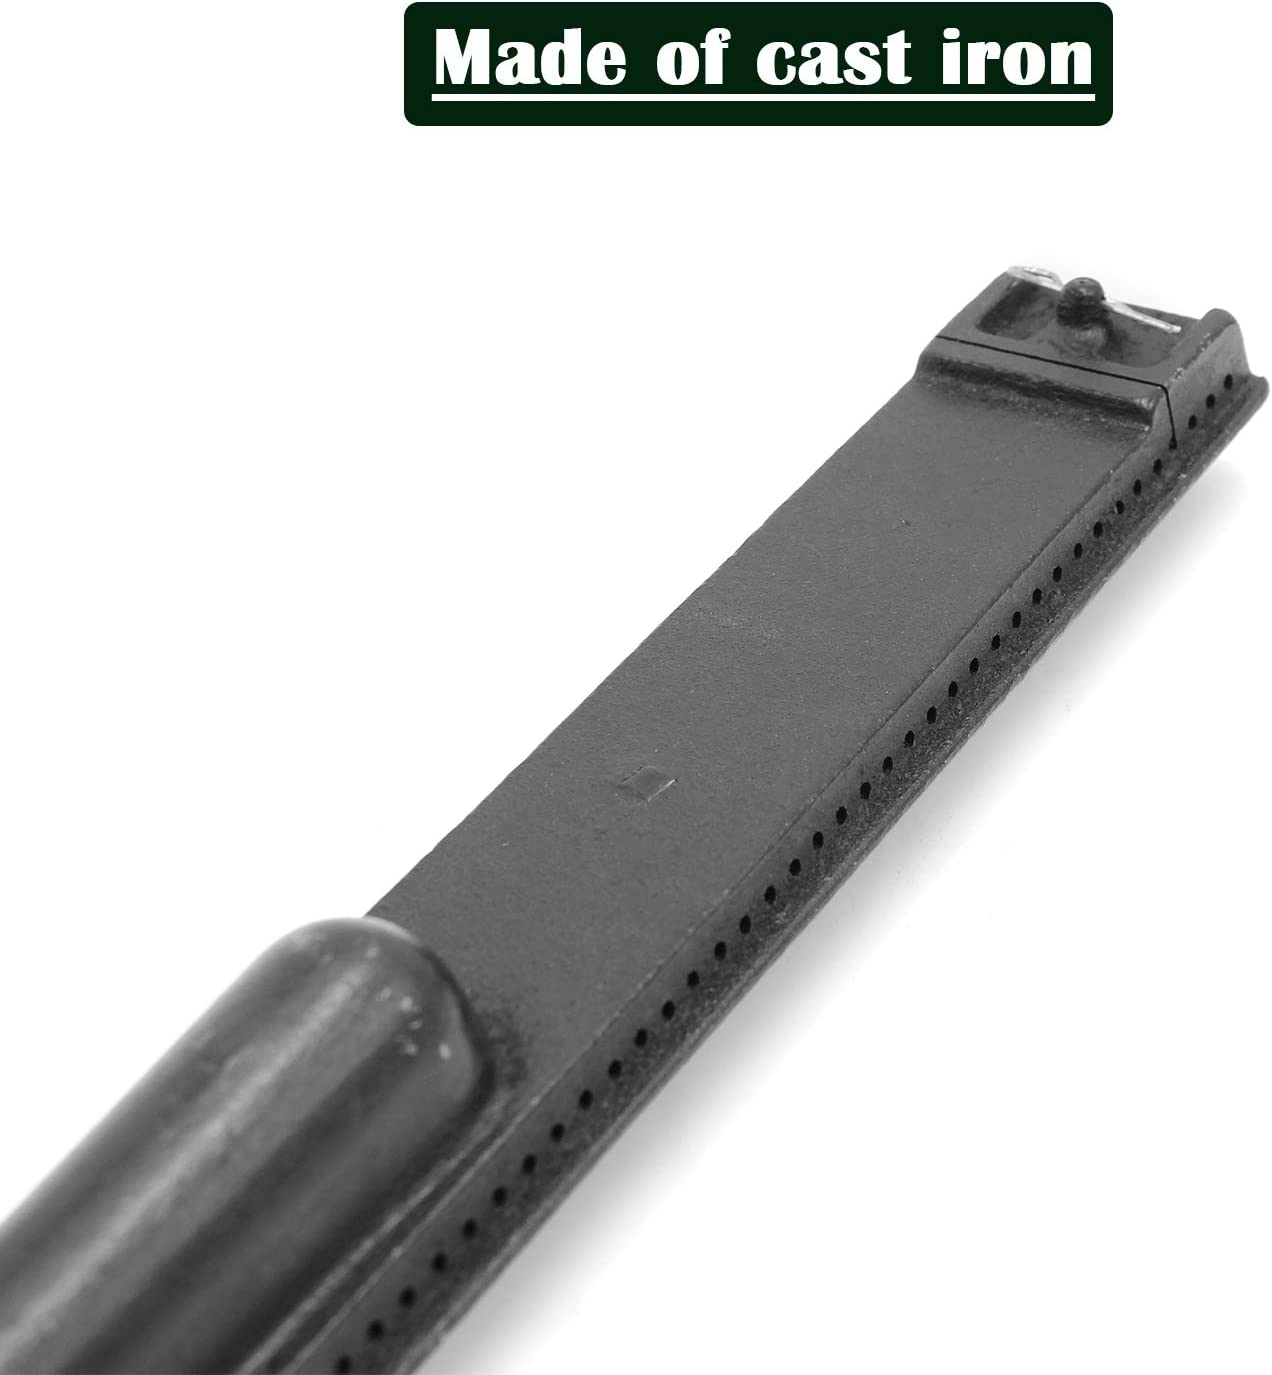 VICOOL Cast Iron Burner Pipe Tube Gas Grill Replacement Parts for Jennair 720-0061 Nexgrill 720-0671 Charbroil Lowes Model Grills 720-0062 720-0063 hyB630 720-0165 4-Pack 15 13//16 Inch